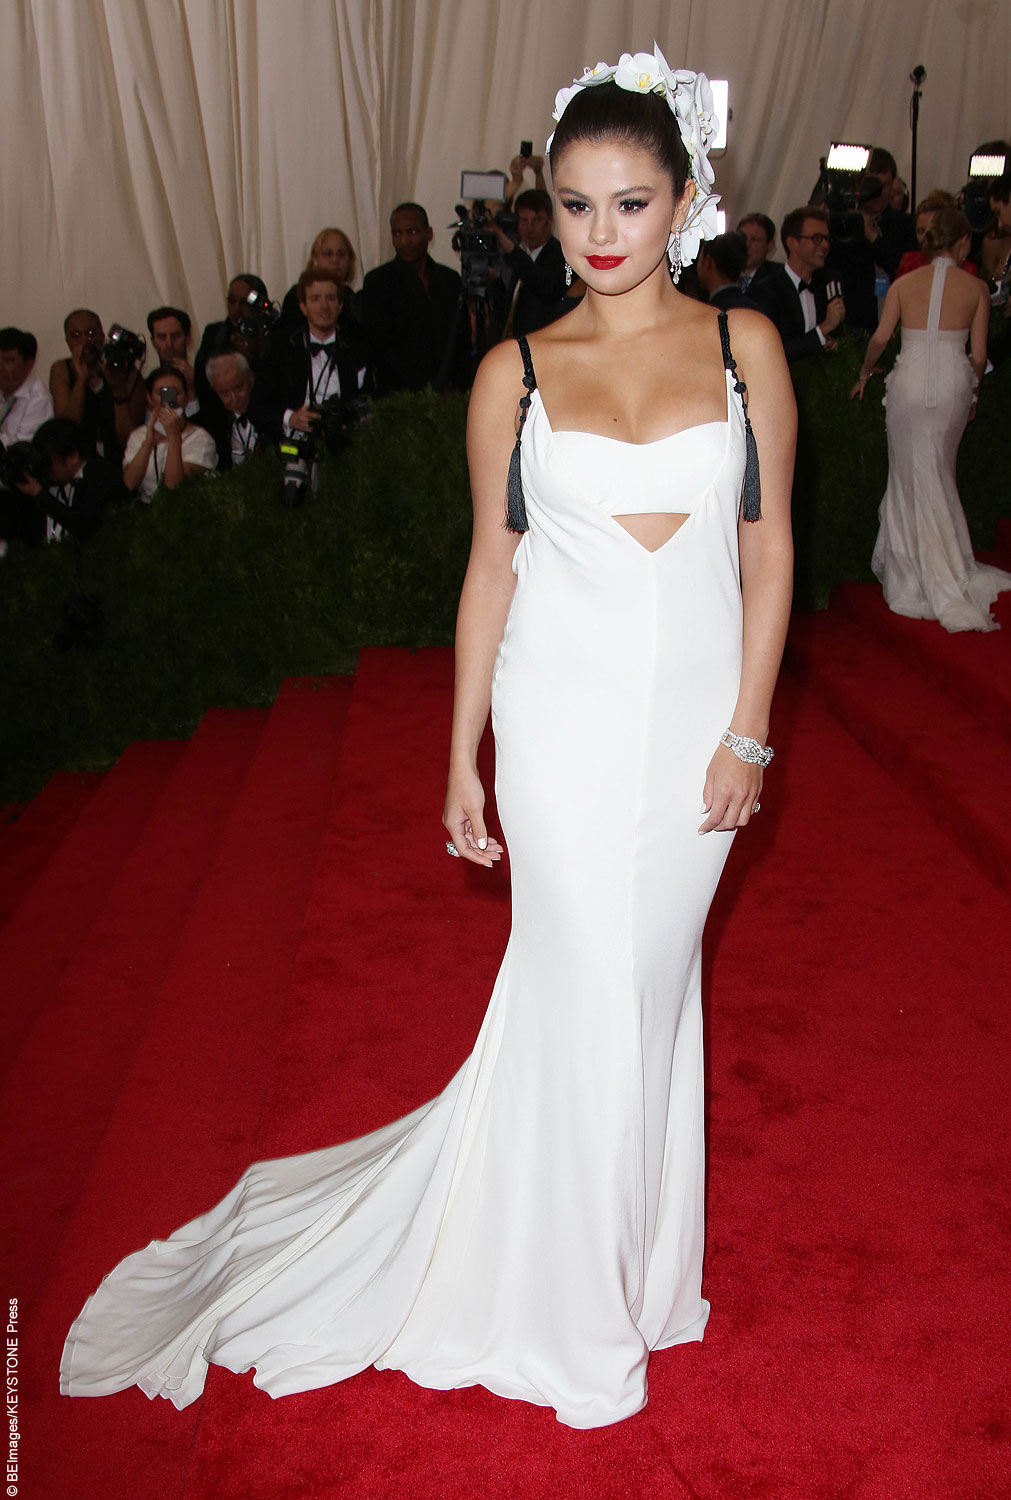 Selena Gomez showed off her Latin curves in a white Vera Wang gown. Selena showed some skin in the backless number and accessorized the look with a beautiful orchid headpiece over top of her sleek up-do. With elegant red lips, Selena caught the attention of ex-boyfriend Justin Bieber, who later said how beautiful she looked to […]